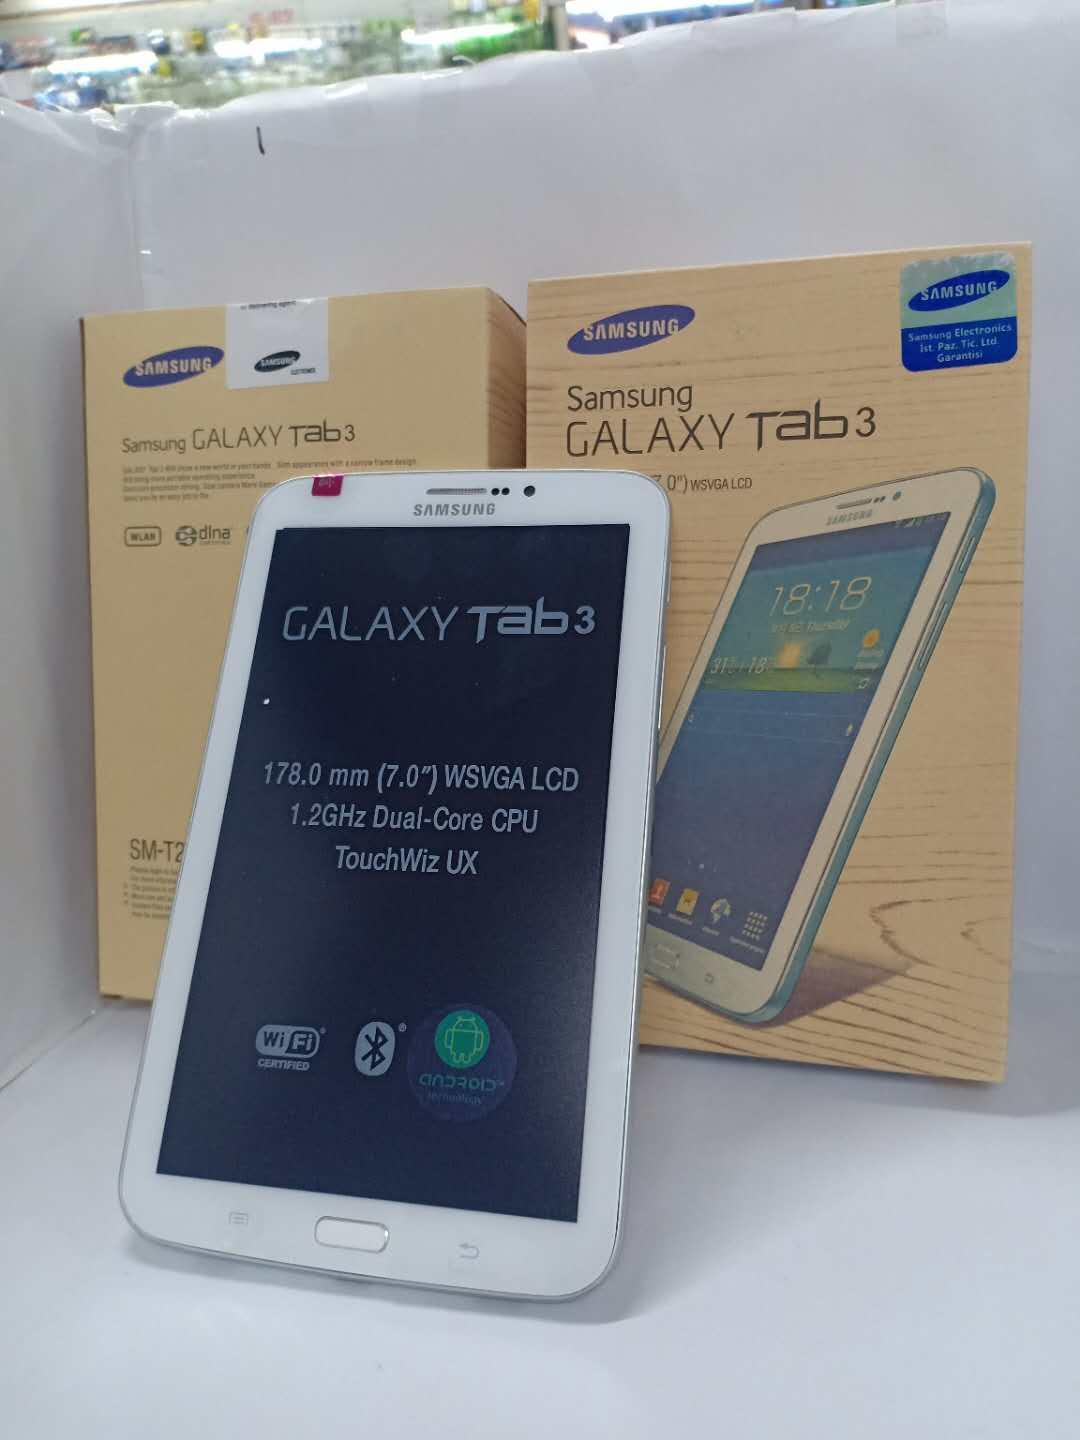 Samsung Tablet Philippines - Samsung Mobile Tablet for sale - prices